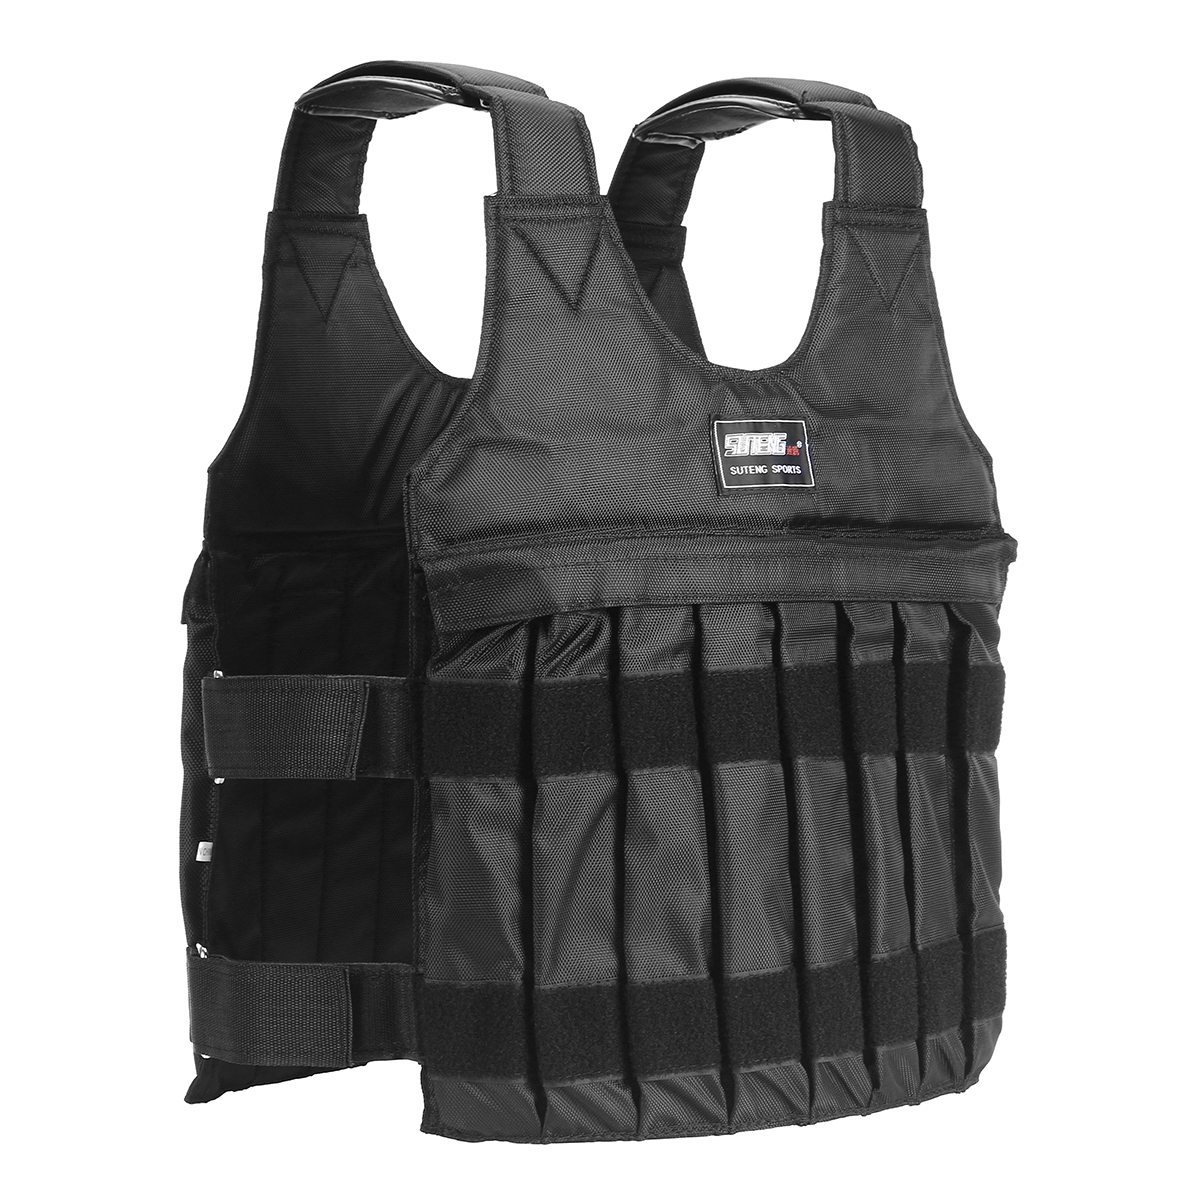 110 44lbs//110lbs Exercise Training Fitness Workout Boxing Weighted Vest Jacket Men Women Dwawoo Adjustable Weighted Vest